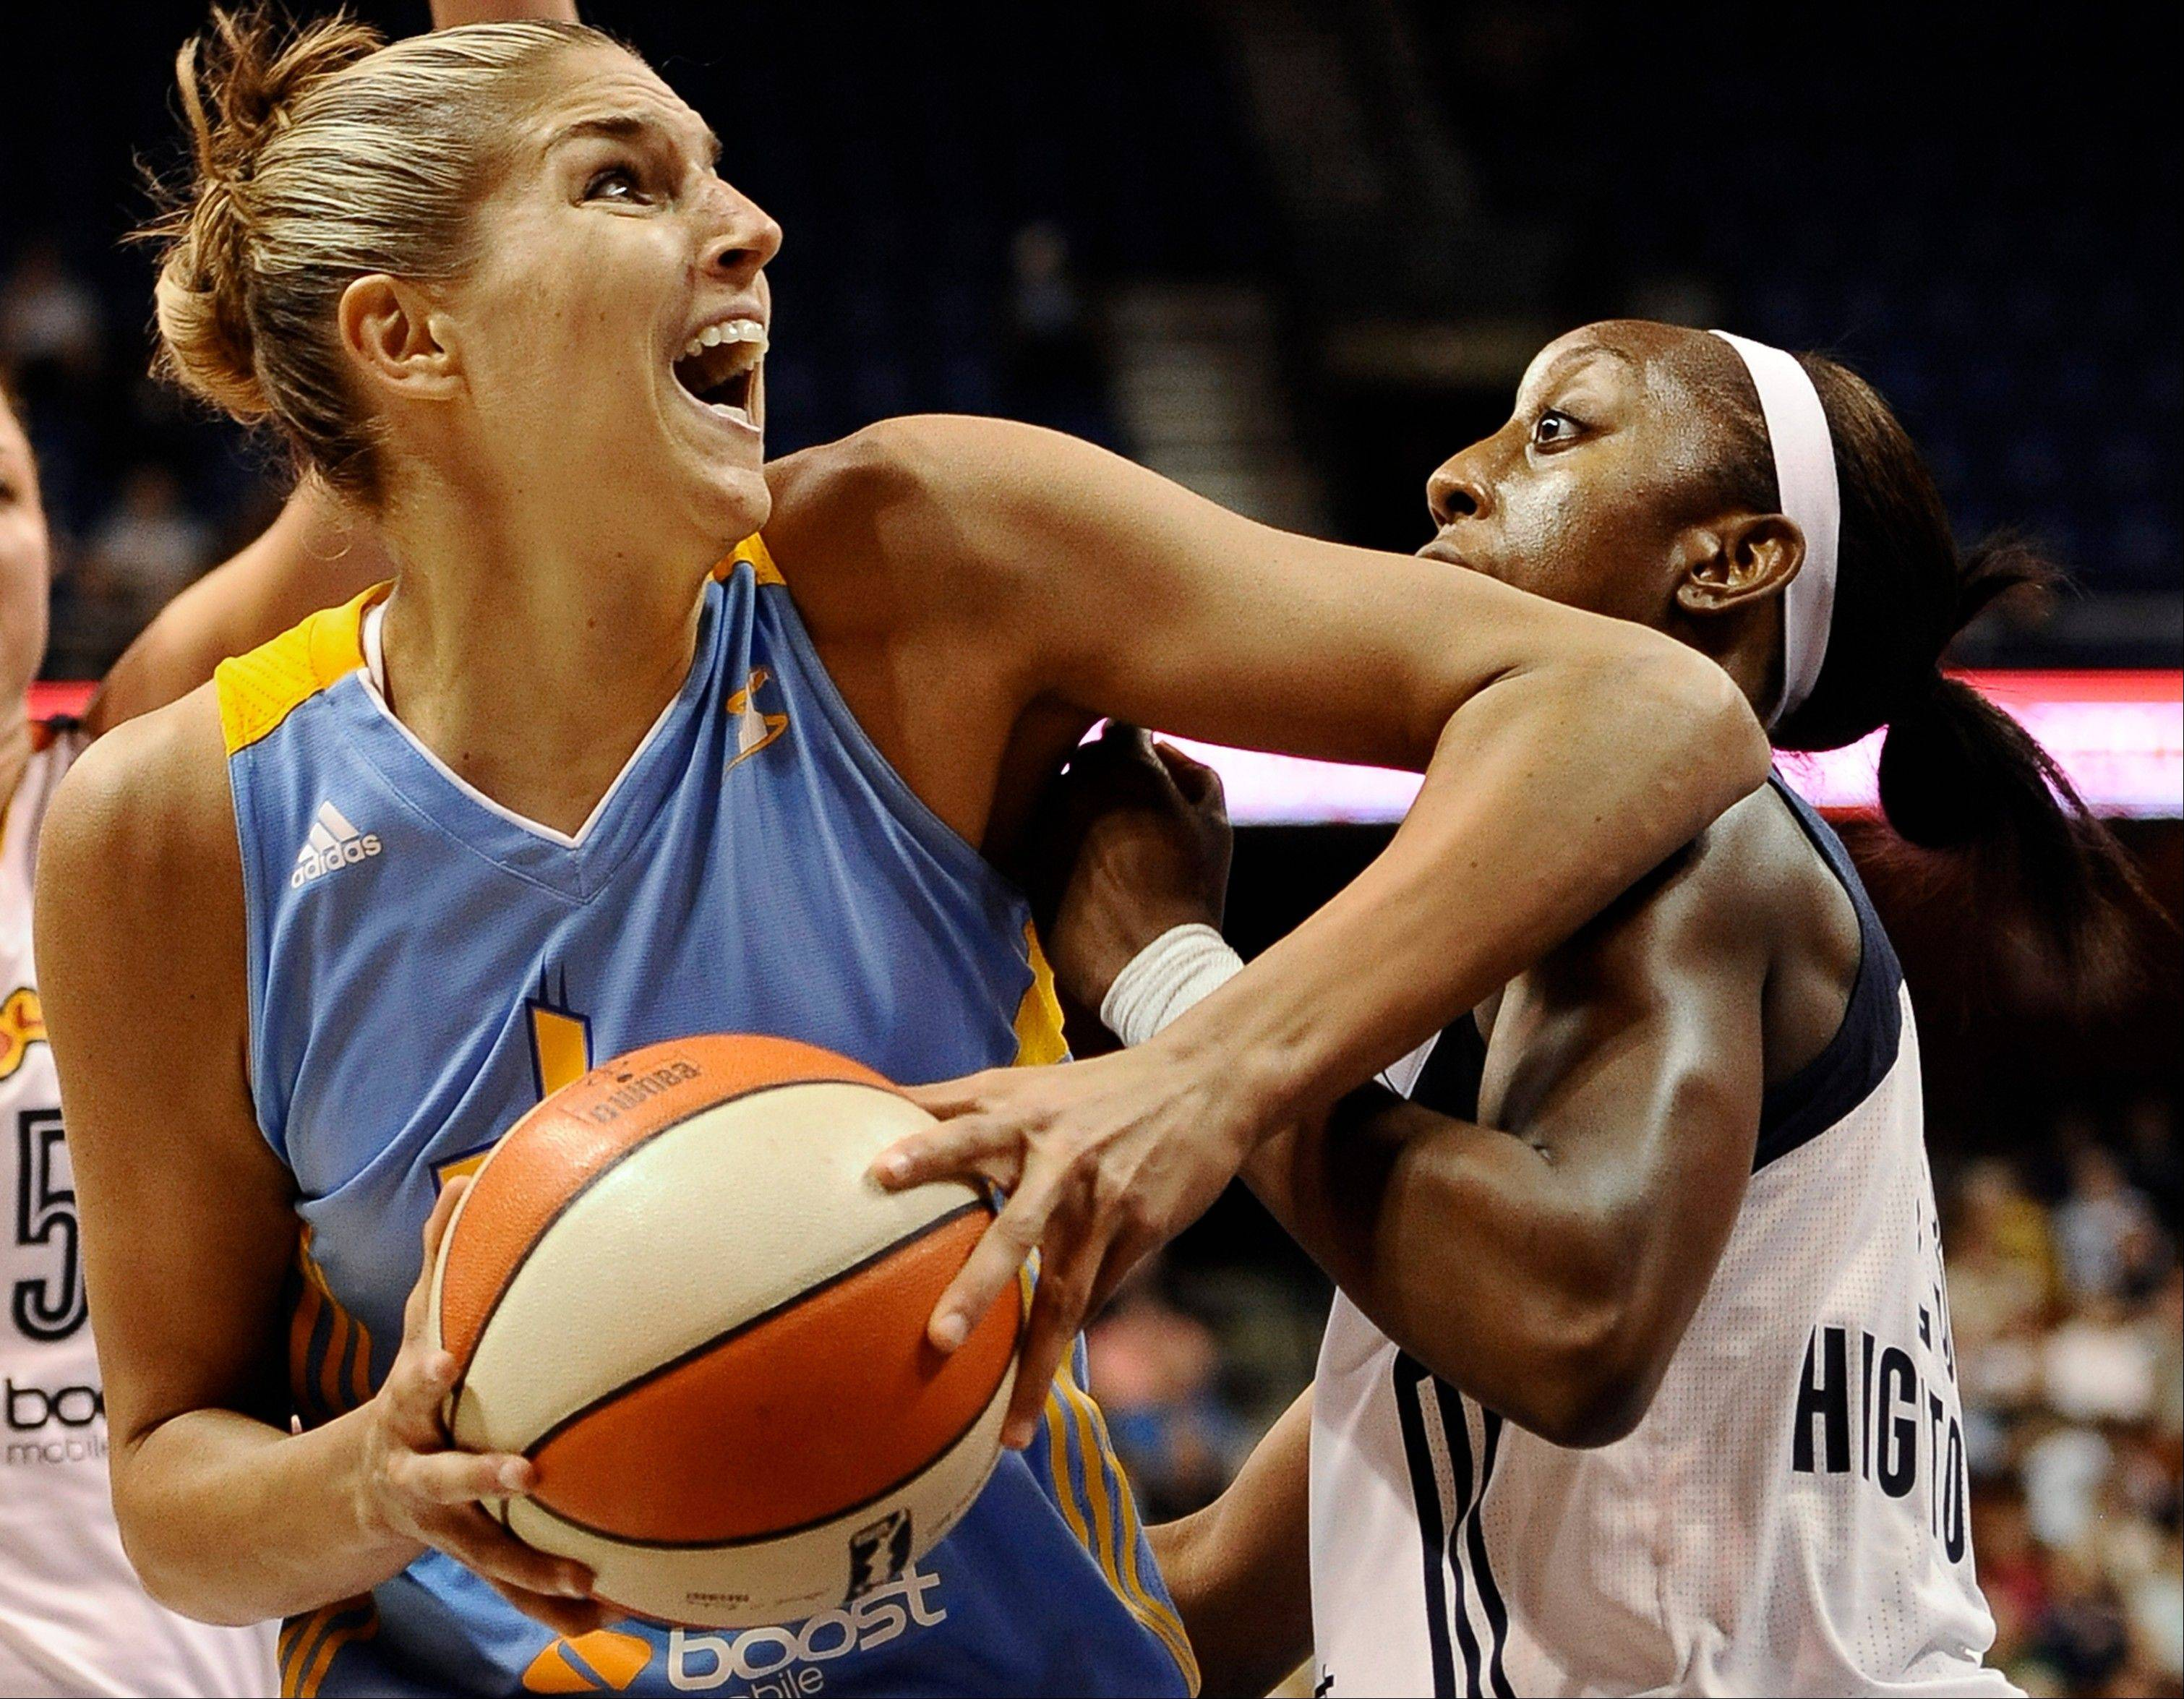 FILE - In this Aug. 9, 2013, file photo, Chicago Sky's Elena Delle Donne, left, is guarded by Connecticut Sun's Allison Hightower during the first half of a WNBA basketball game in Uncasville, Conn. Delle Donne led Chicago to its first postseason berth in franchise history and hopes to help the Sky defeat defending WNBA champion, Indiana Fever, in the opening round. (AP Photo/Jessica Hill, File)